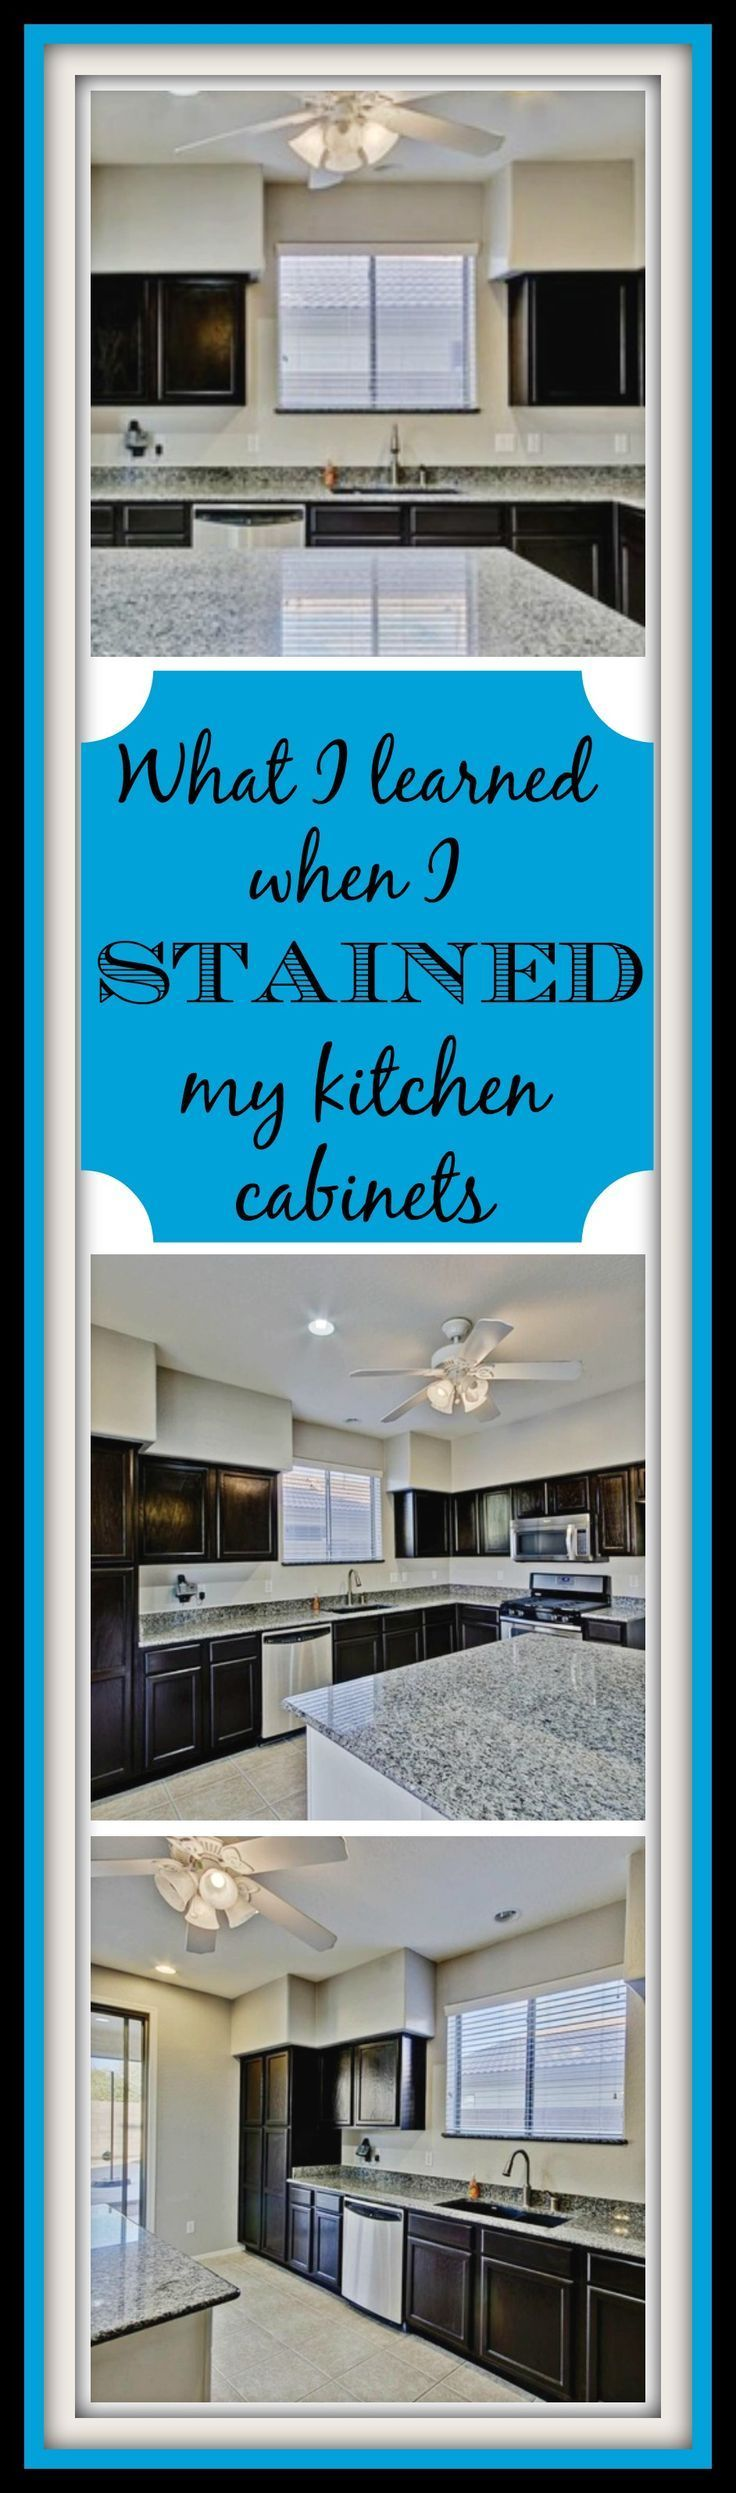 How to Stain Kitchen Cabinets | Java gel stains, Java gel and ...